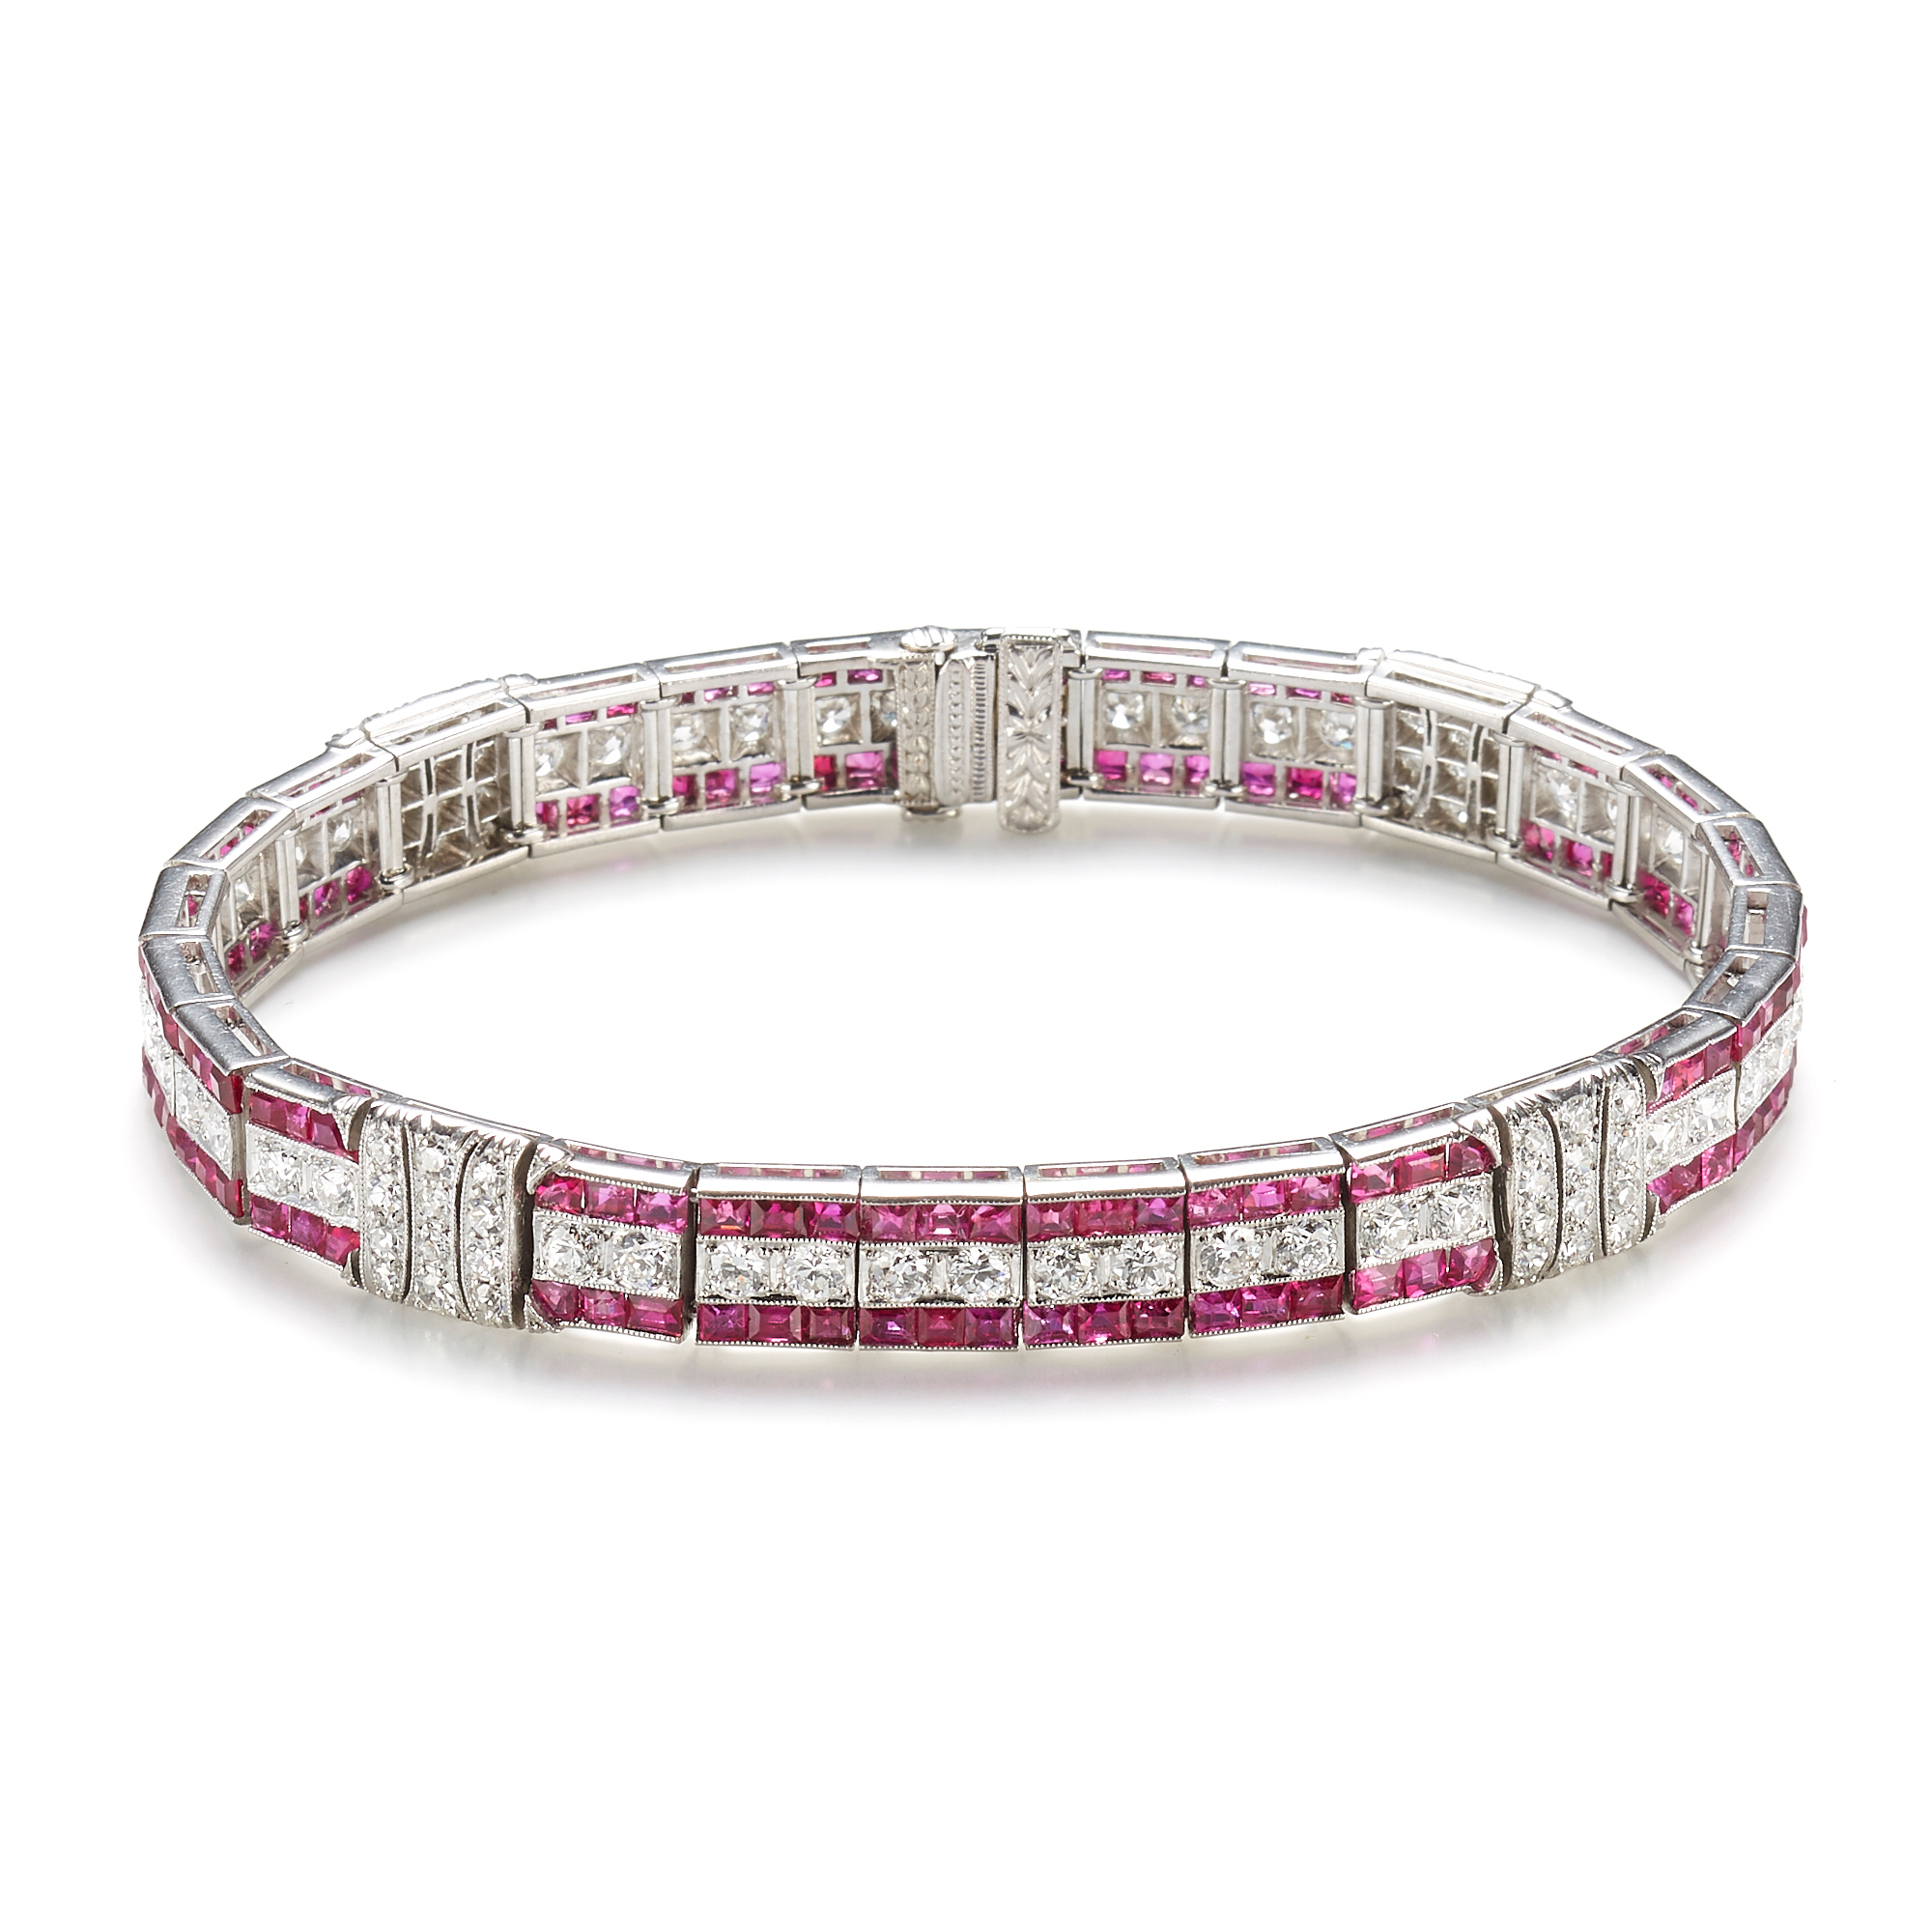 Ruby & Diamond Tiffany & Co. Art Deco Bracelet